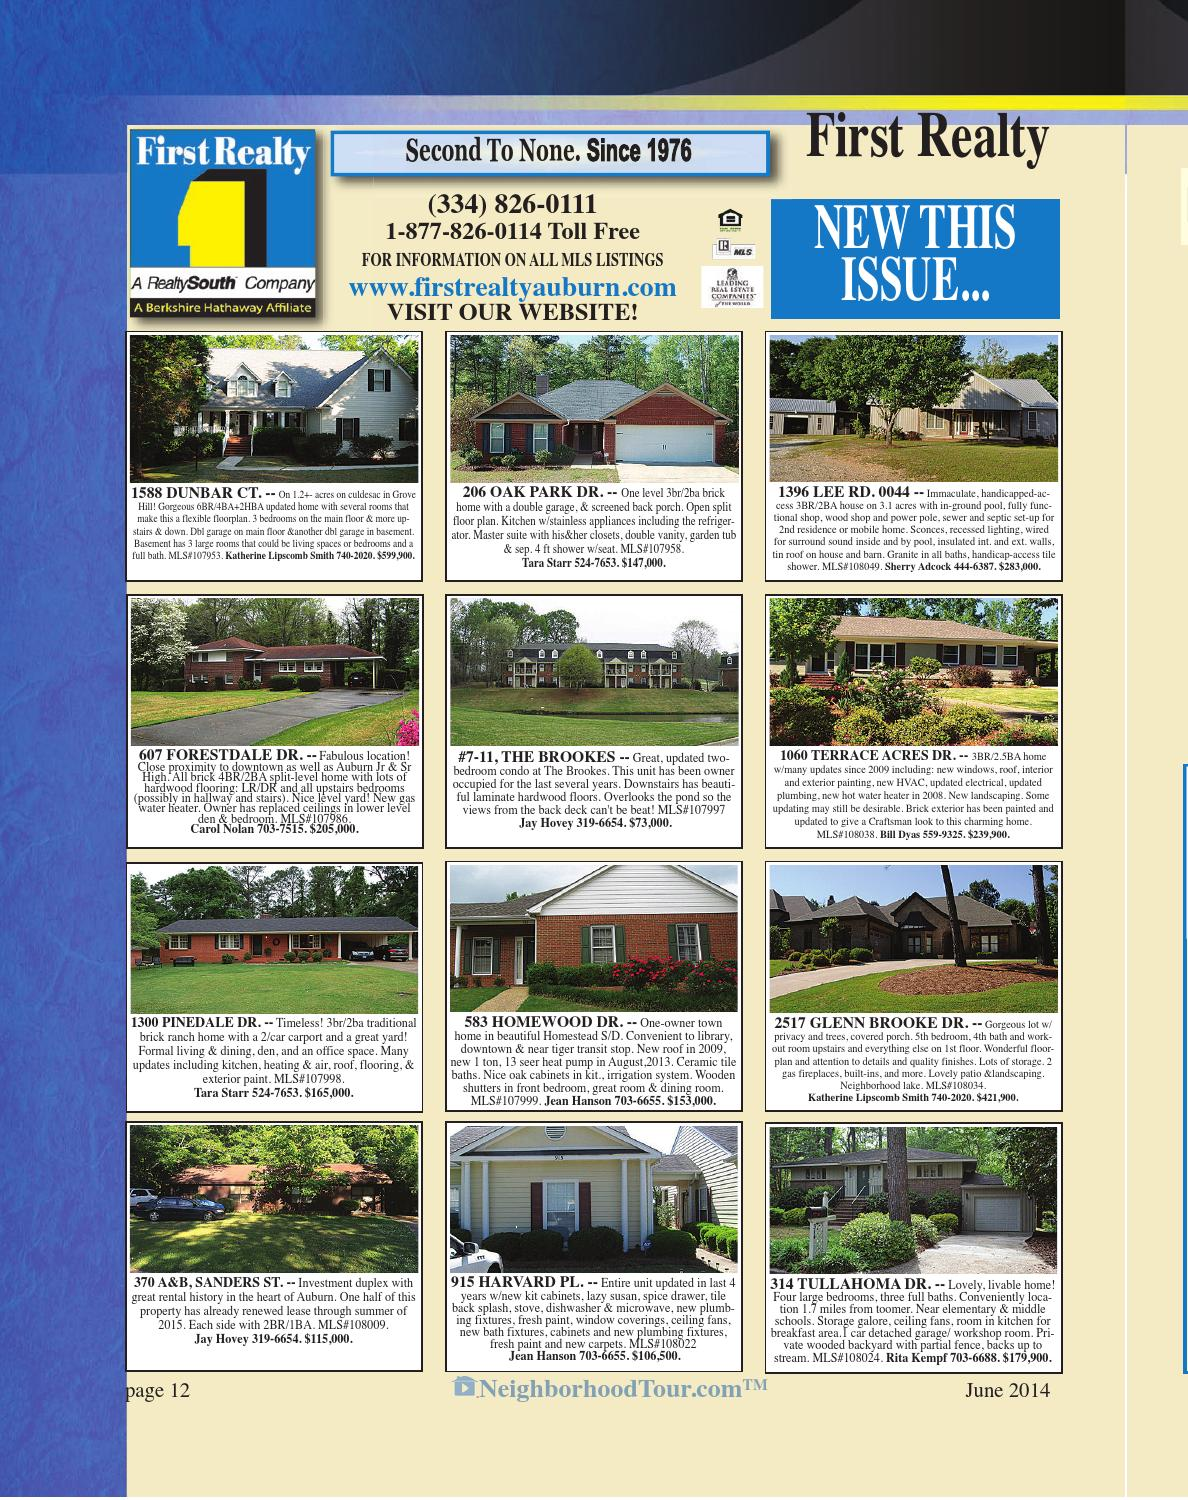 Tremendous Nht Mag Auburn Opelika June 2014 By Neighborhoodtour Com Squirreltailoven Fun Painted Chair Ideas Images Squirreltailovenorg